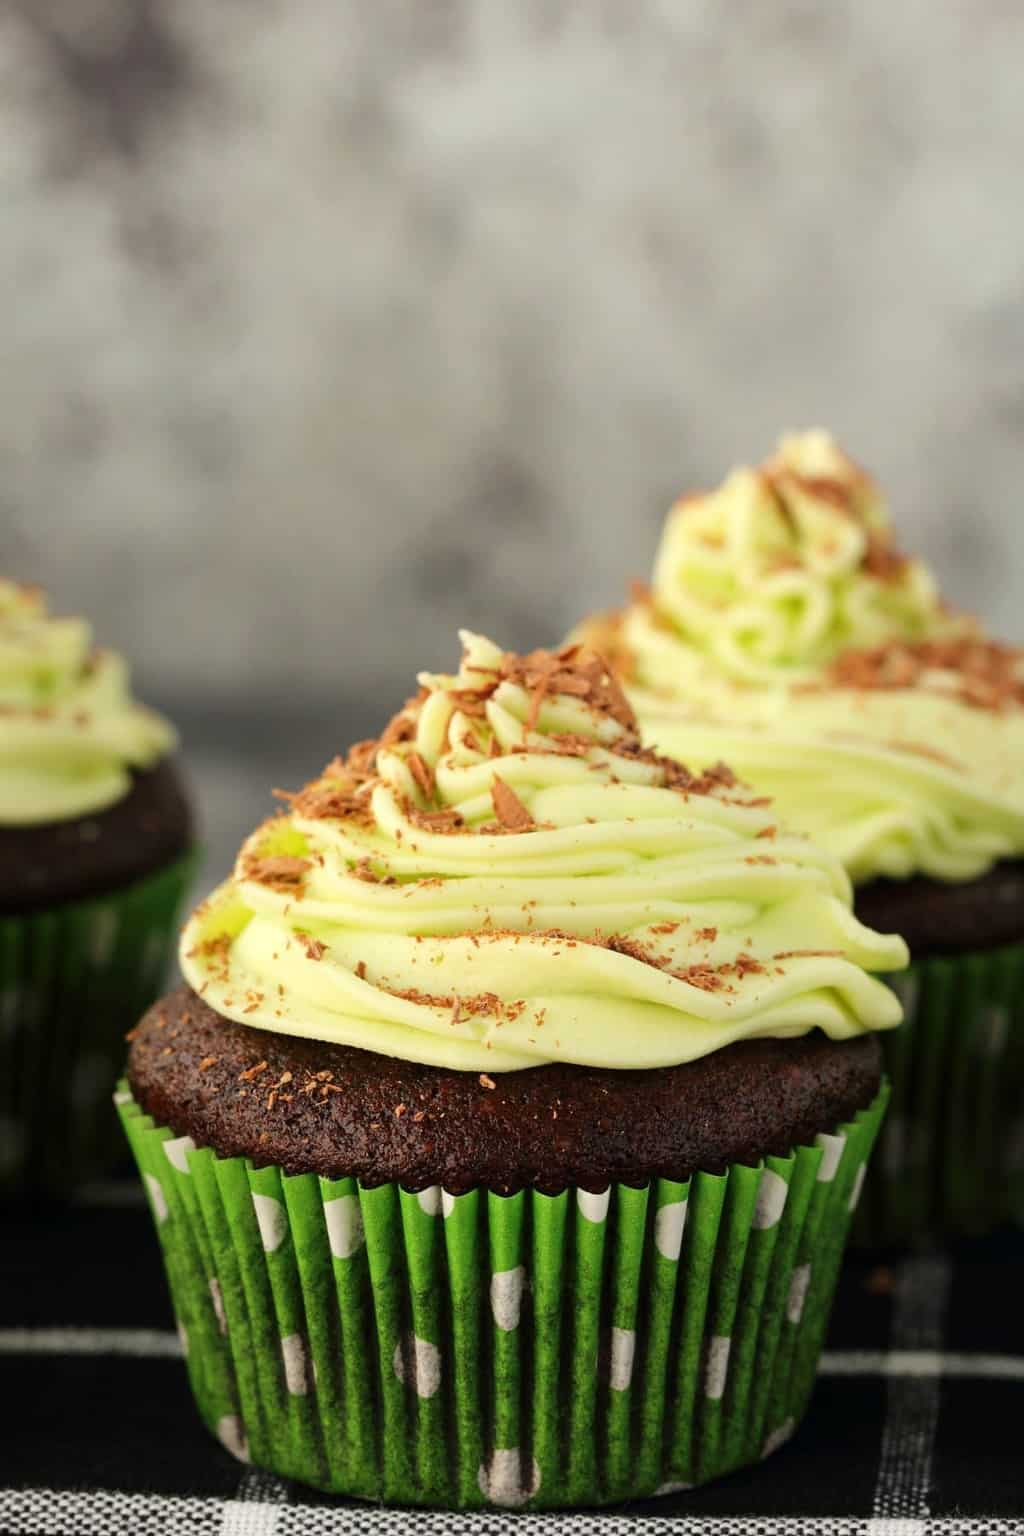 Vegan chocolate cupcakes topped with mint buttercream frosting against a dark background.